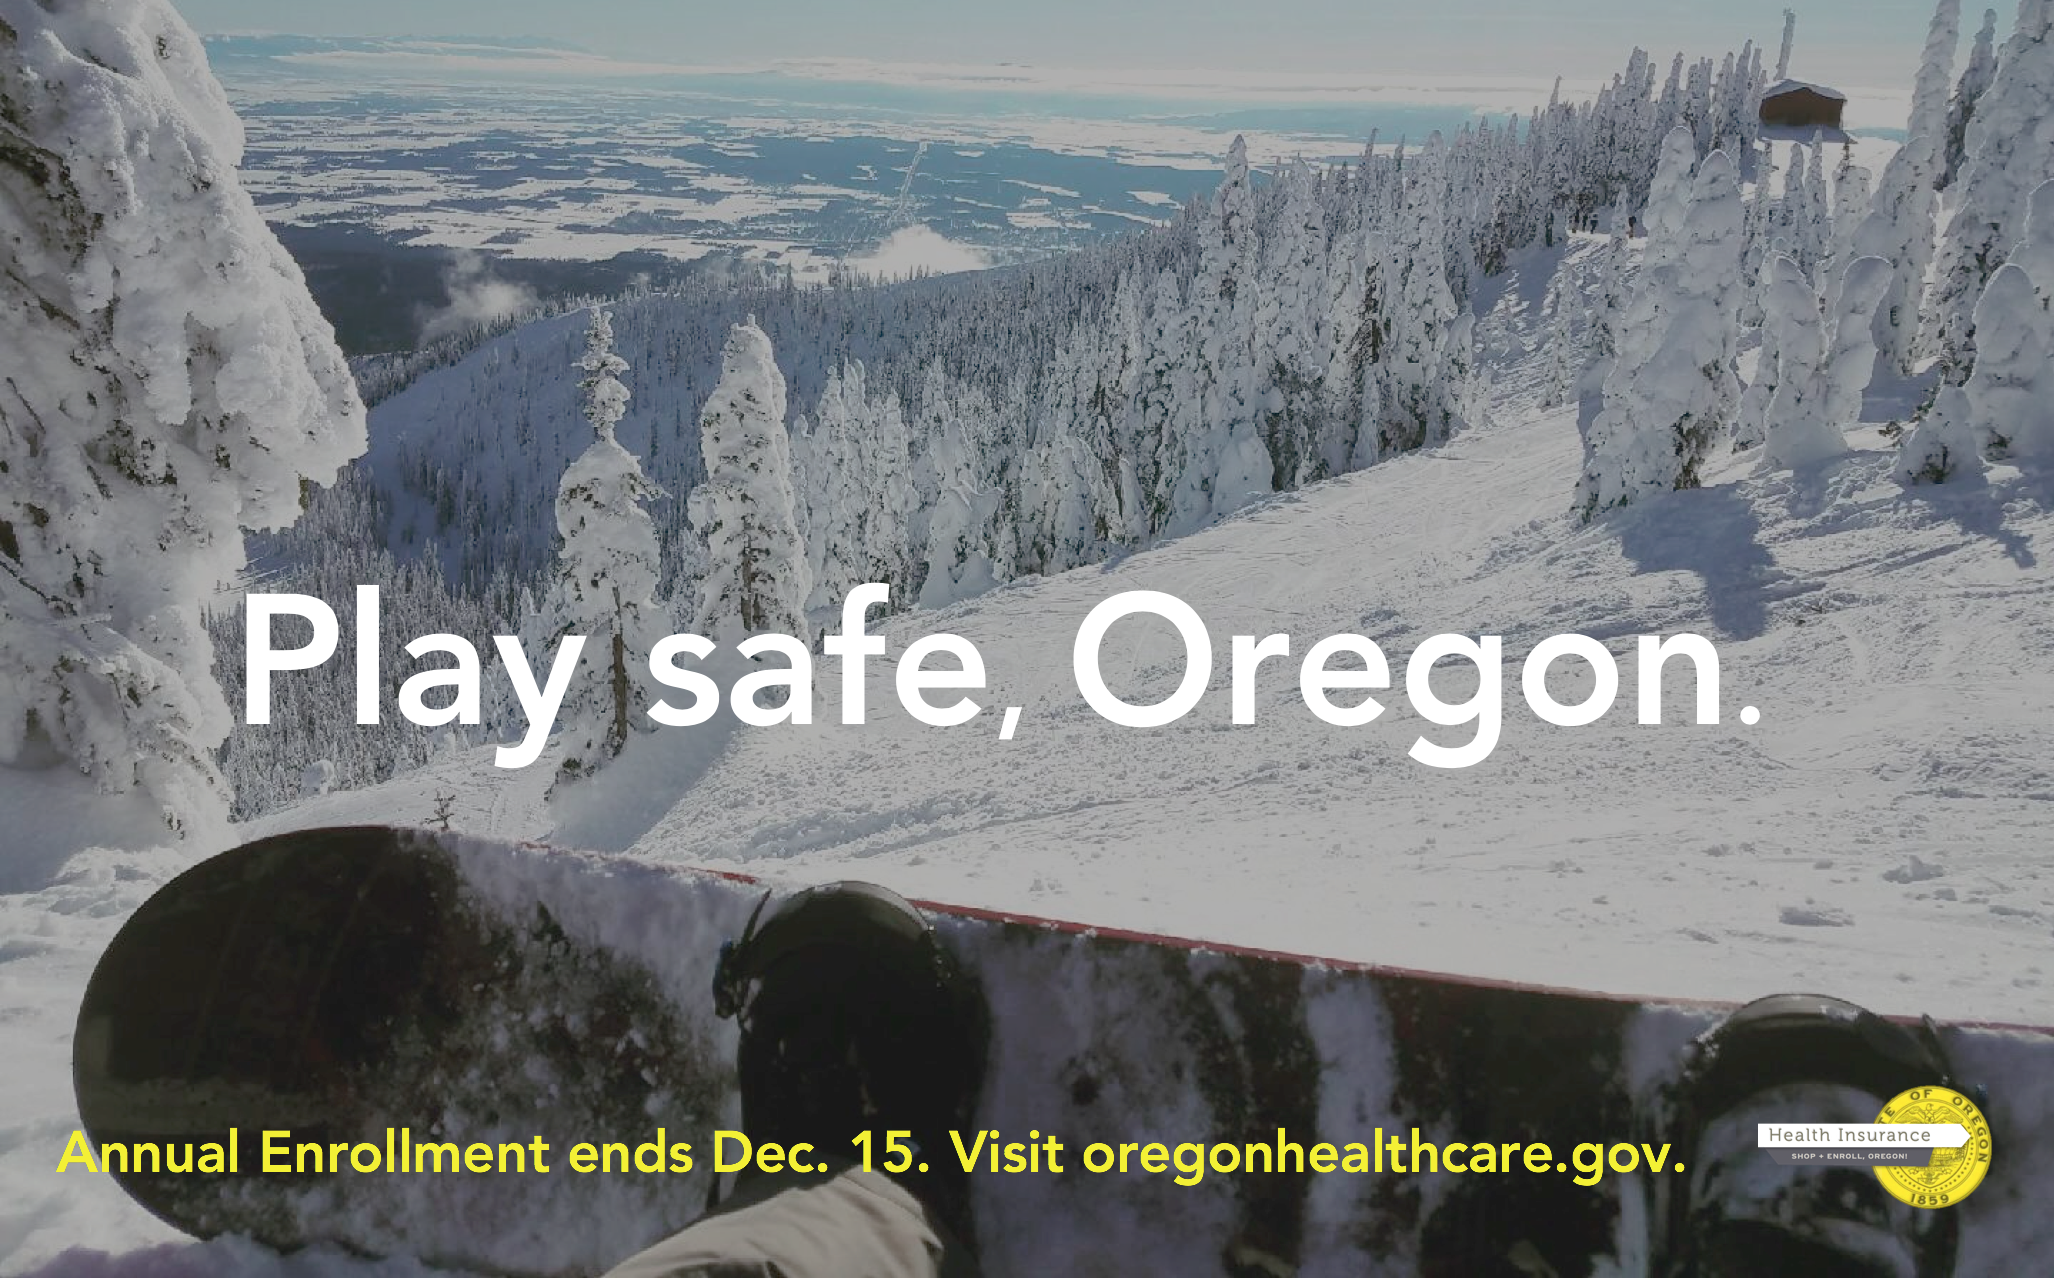 enroll oregon // grady britton //  winter 17  play safe, oregon.   this is a mockup of an ooh campaign for Oregon's annual enrollment effort. the concept celebrates the natural beauty of the state and the active outdoor community that makes up most of the target audience with a cheeky nod to the sometimes not-so-safe pastimes they get up to.